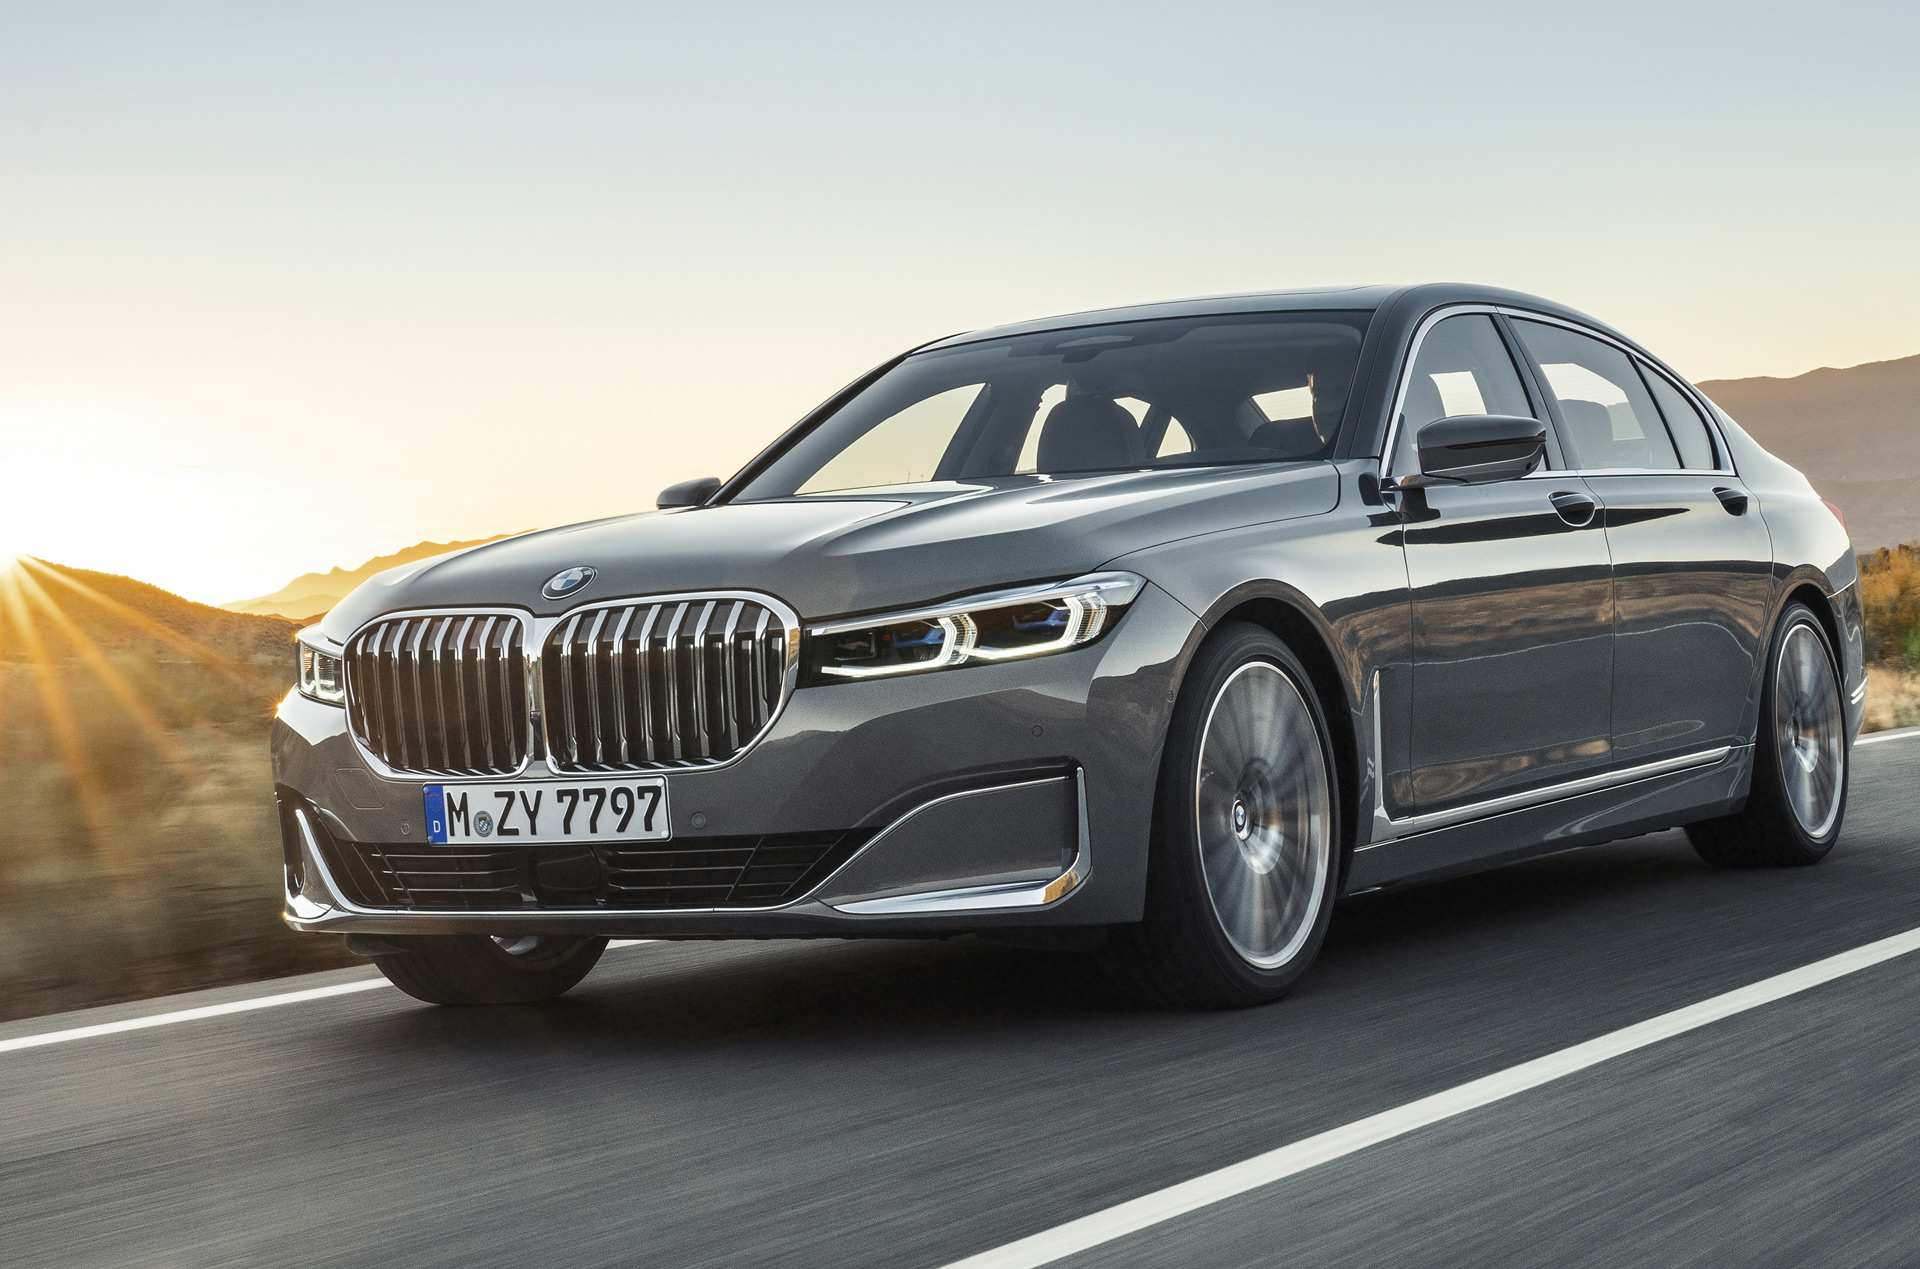 93 A 2020 BMW 7 Series Perfection New New Review